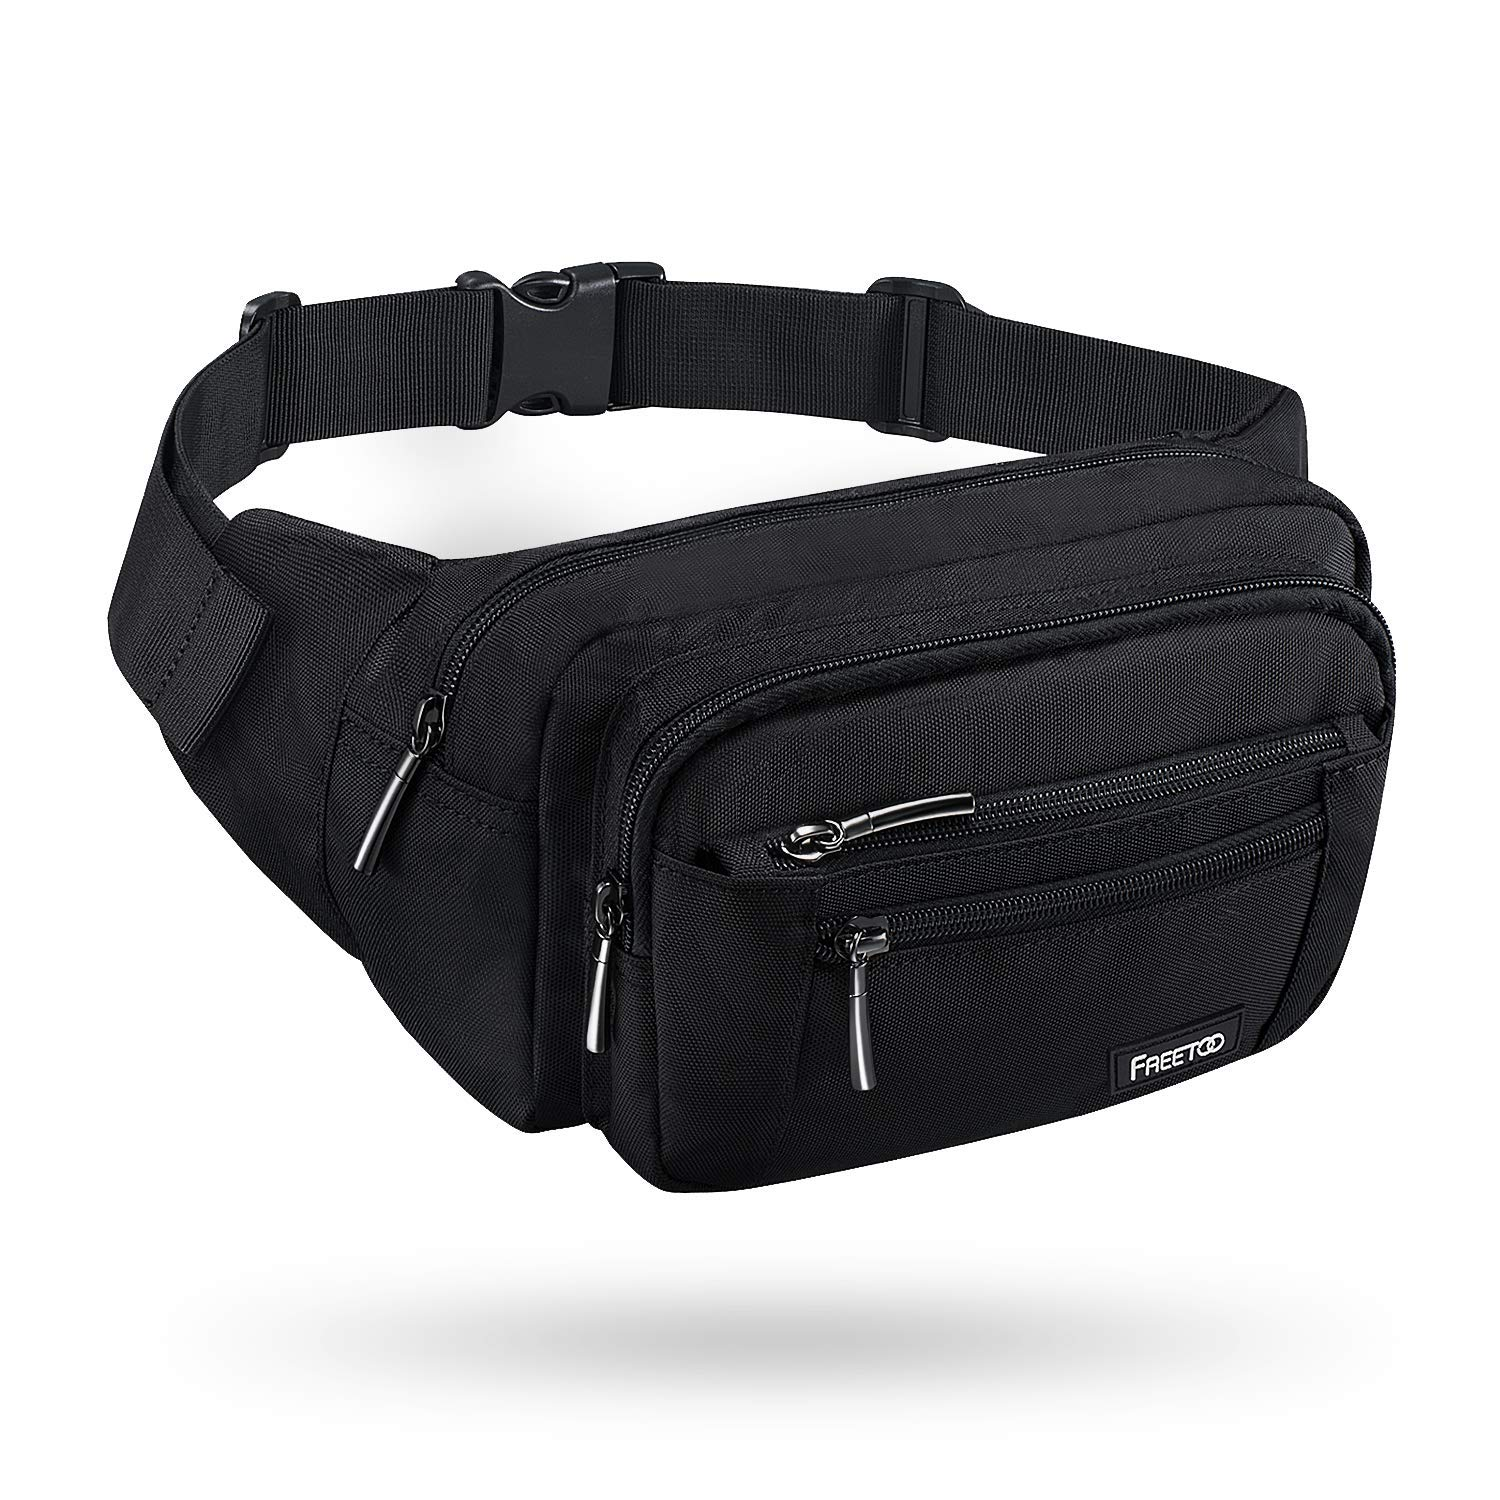 FREETOO Waist Pack Bag Fanny Pack for Men&Women Hip Bum Bag with Adjustable Strap for Outdoors Workout Traveling Casual Running Hiking Cycling (Black) by FREETOO